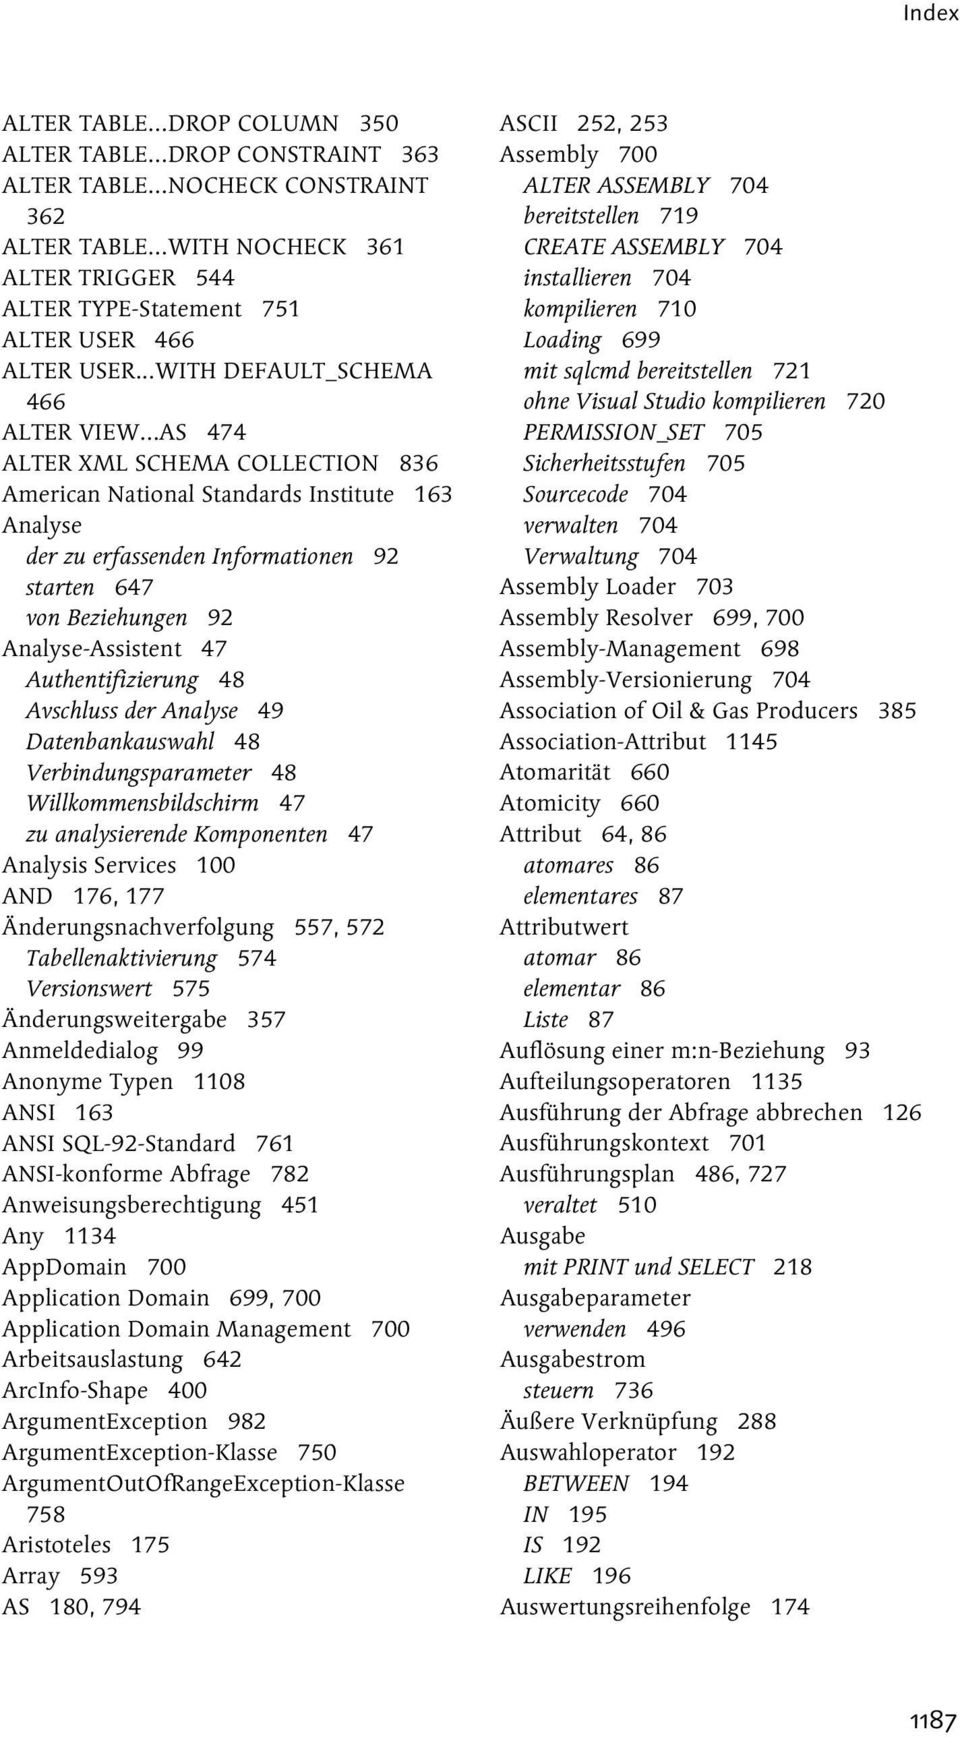 ..AS 474 ALTER XML SCHEMA COLLECTION 836 American National Standards Institute 163 Analyse der zu erfassenden Informationen 92 starten 647 von Beziehungen 92 Analyse-Assistent 47 Authentifizierung 48